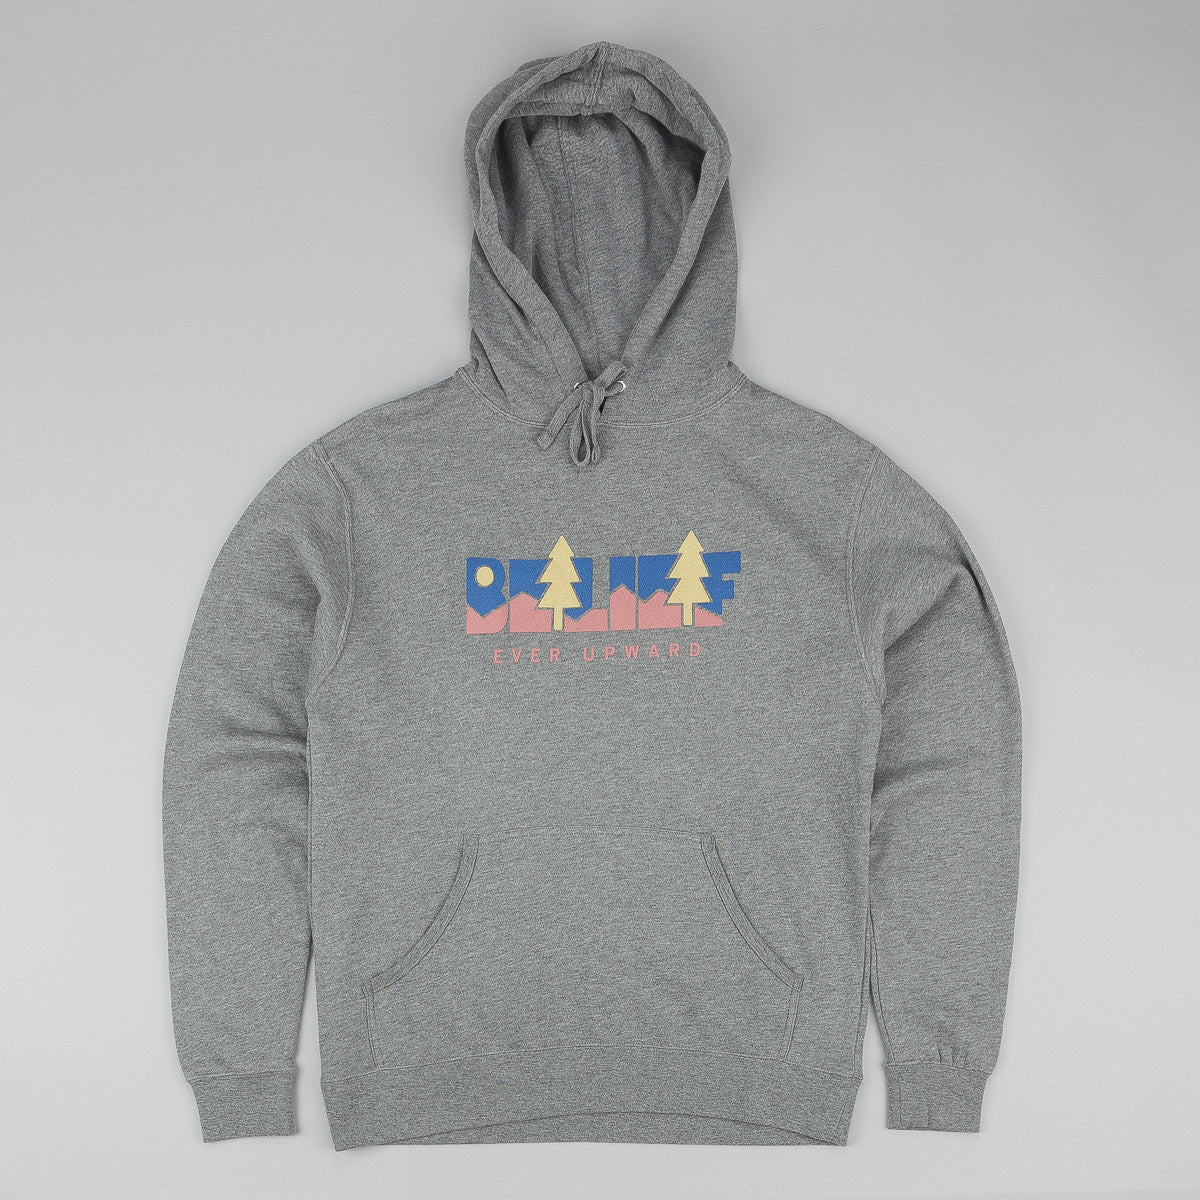 Belief Great Escape Hooded Sweatshirt